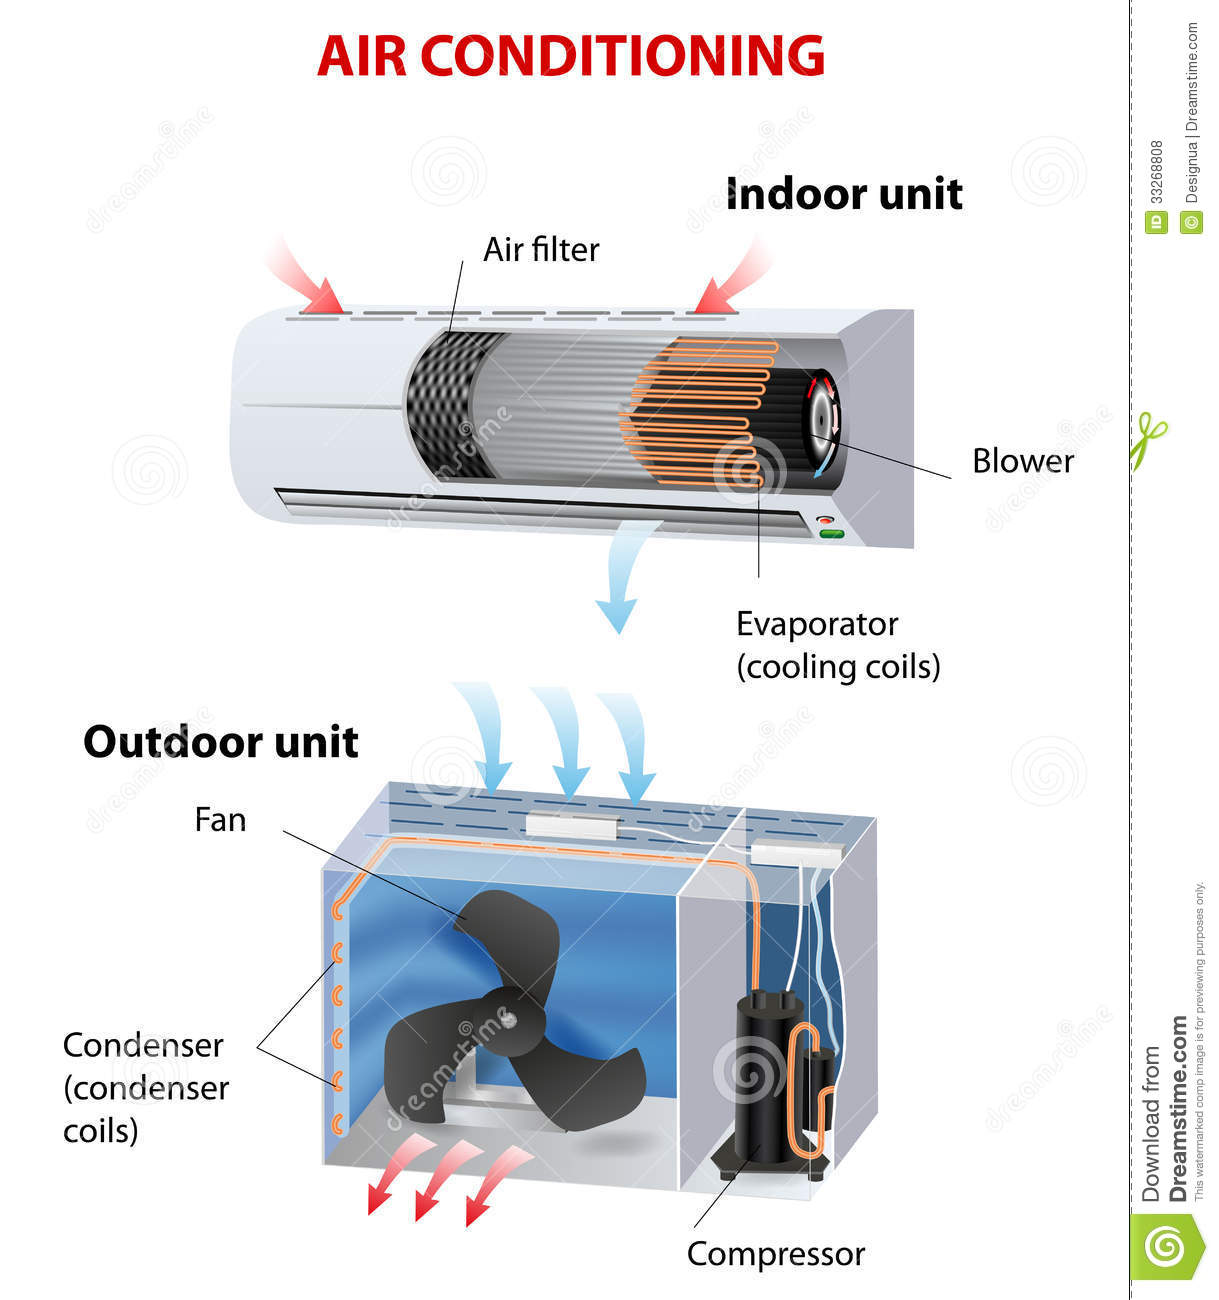 air conditioning room conditioner how does work vector diagram  #B51616